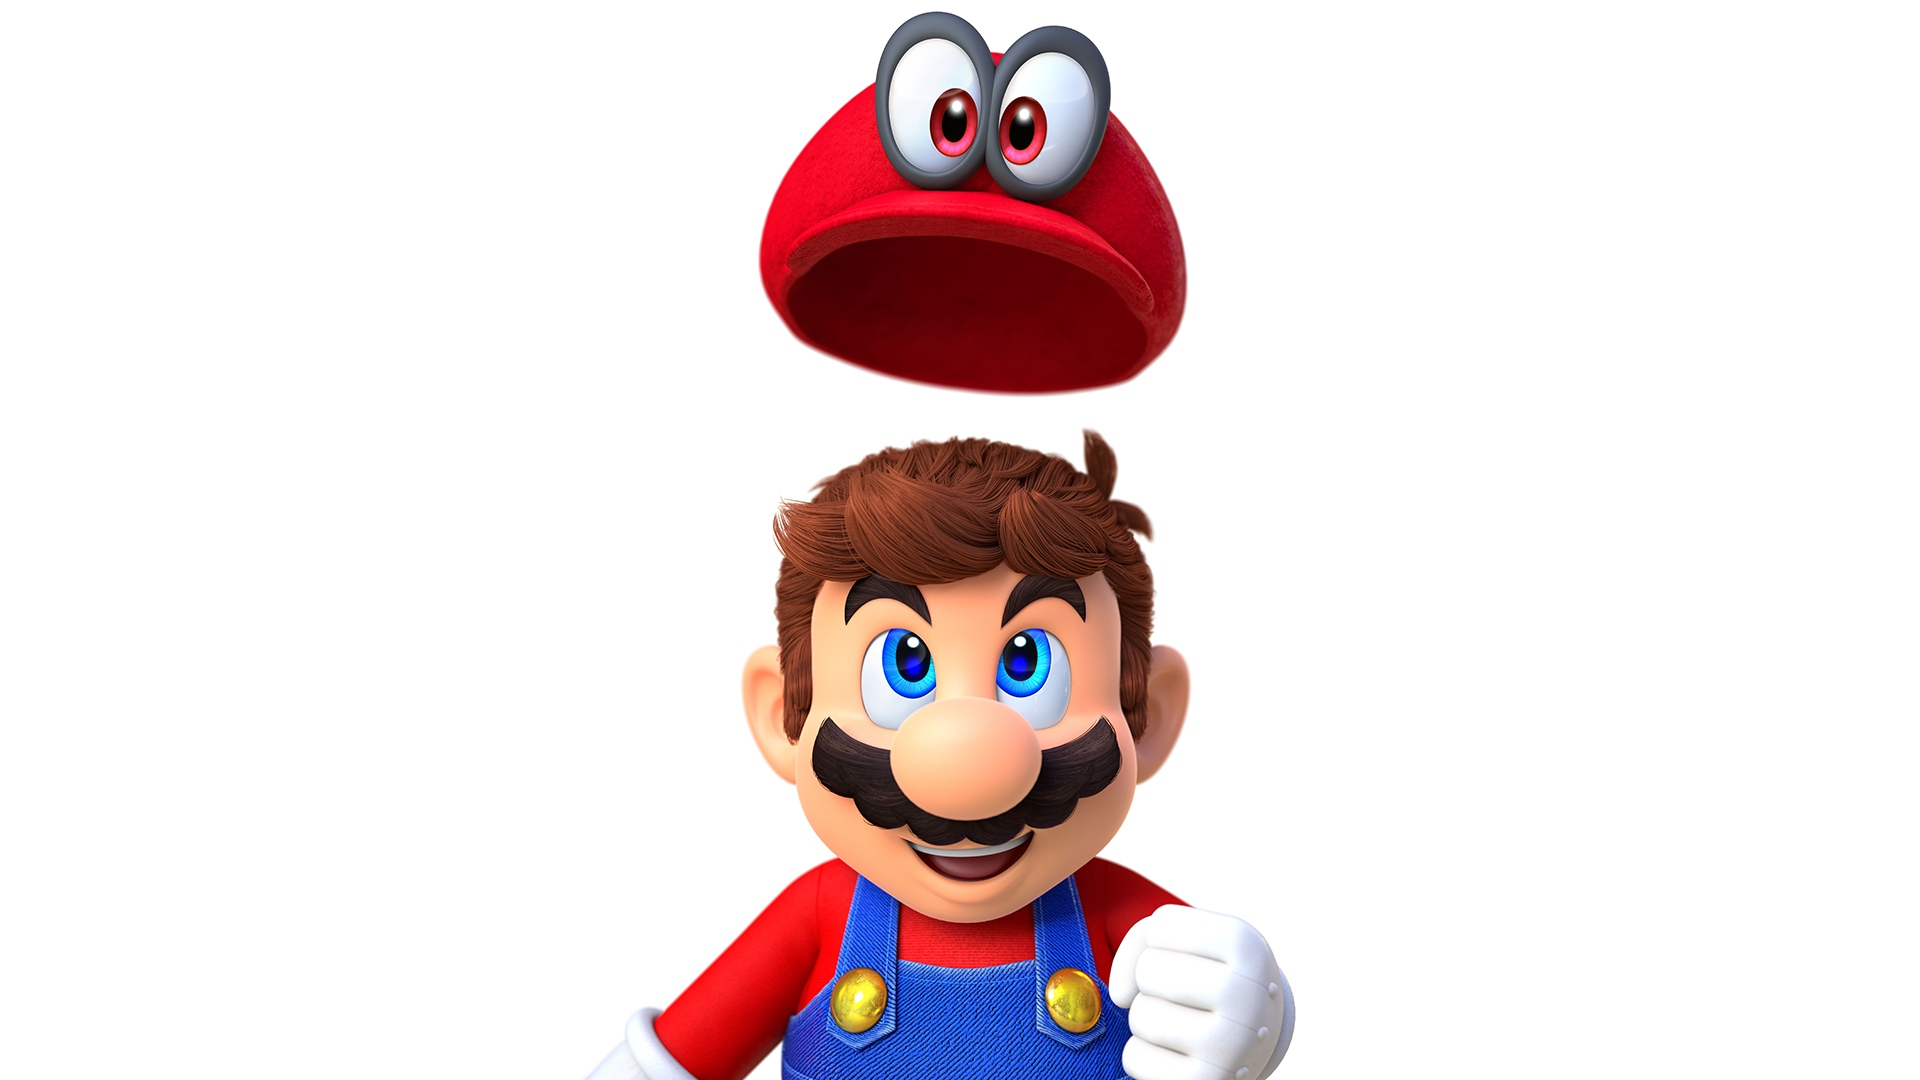 New Iphone Wallpaper Super Mario Odyssey Wallpapers Pictures Images